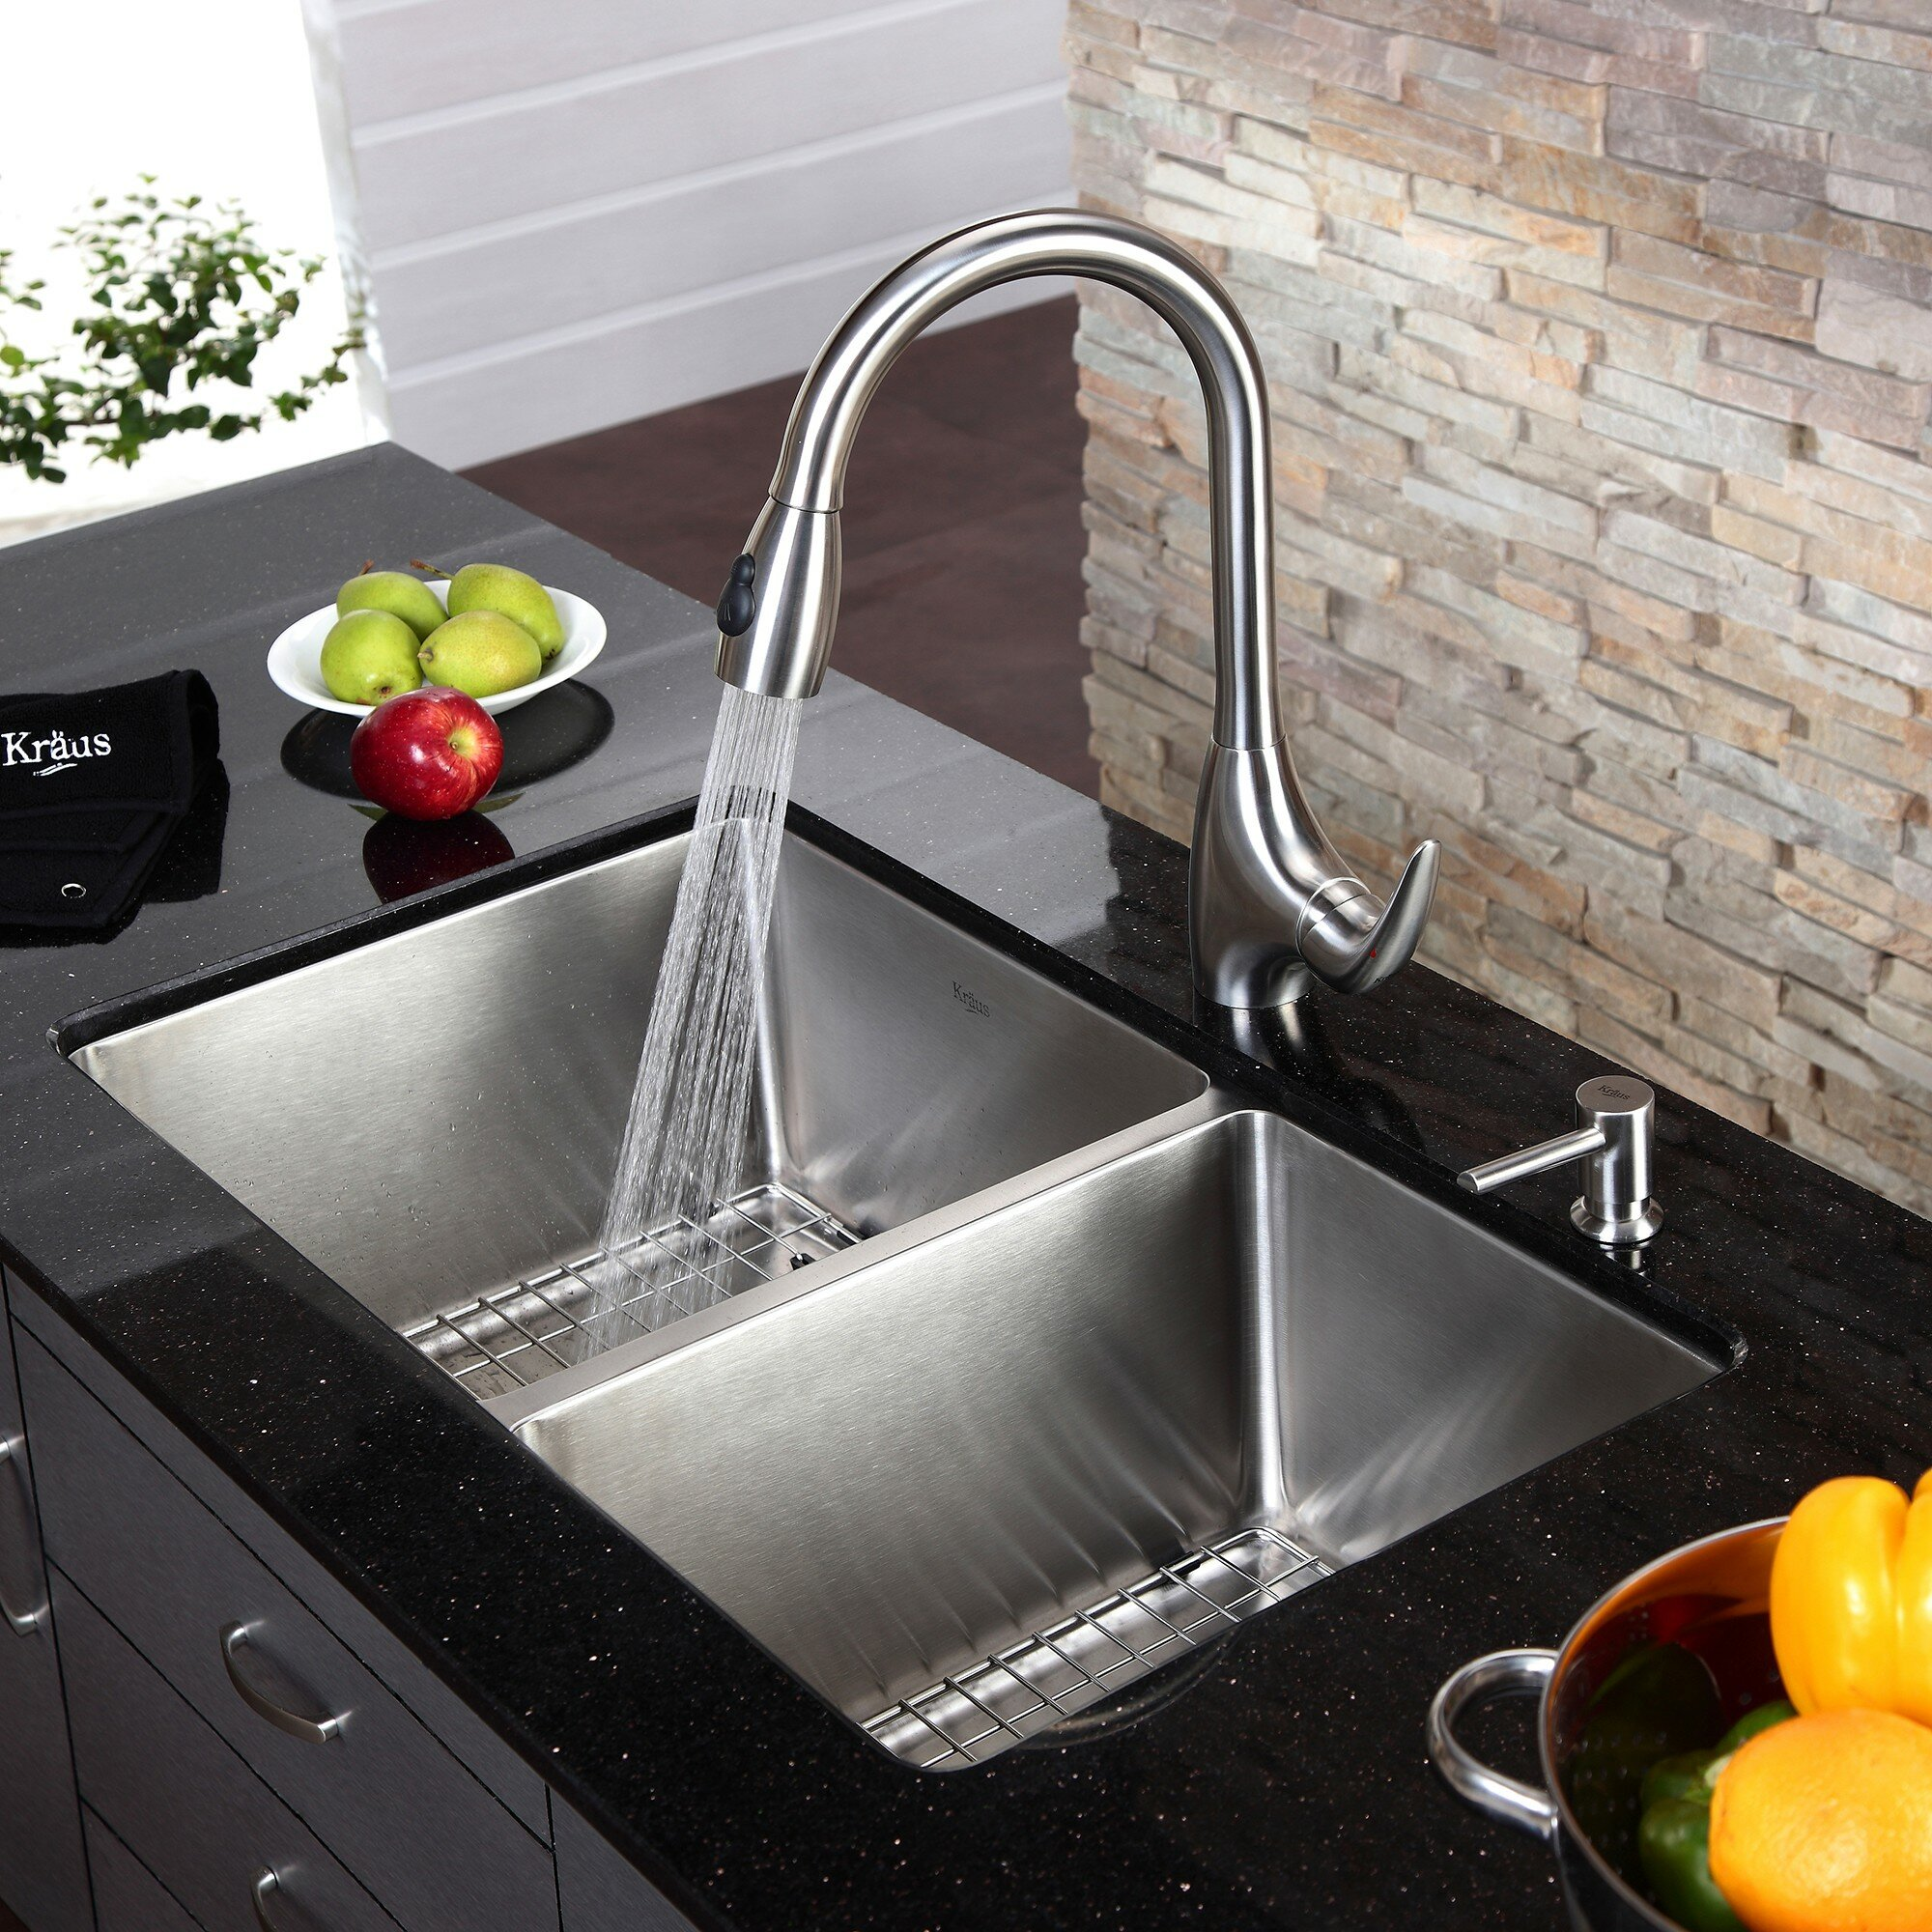 kitchen sinks stainless steel single stainless steel kitchen sink brushed stainless steel undermount kitchen. Interior Design Ideas. Home Design Ideas